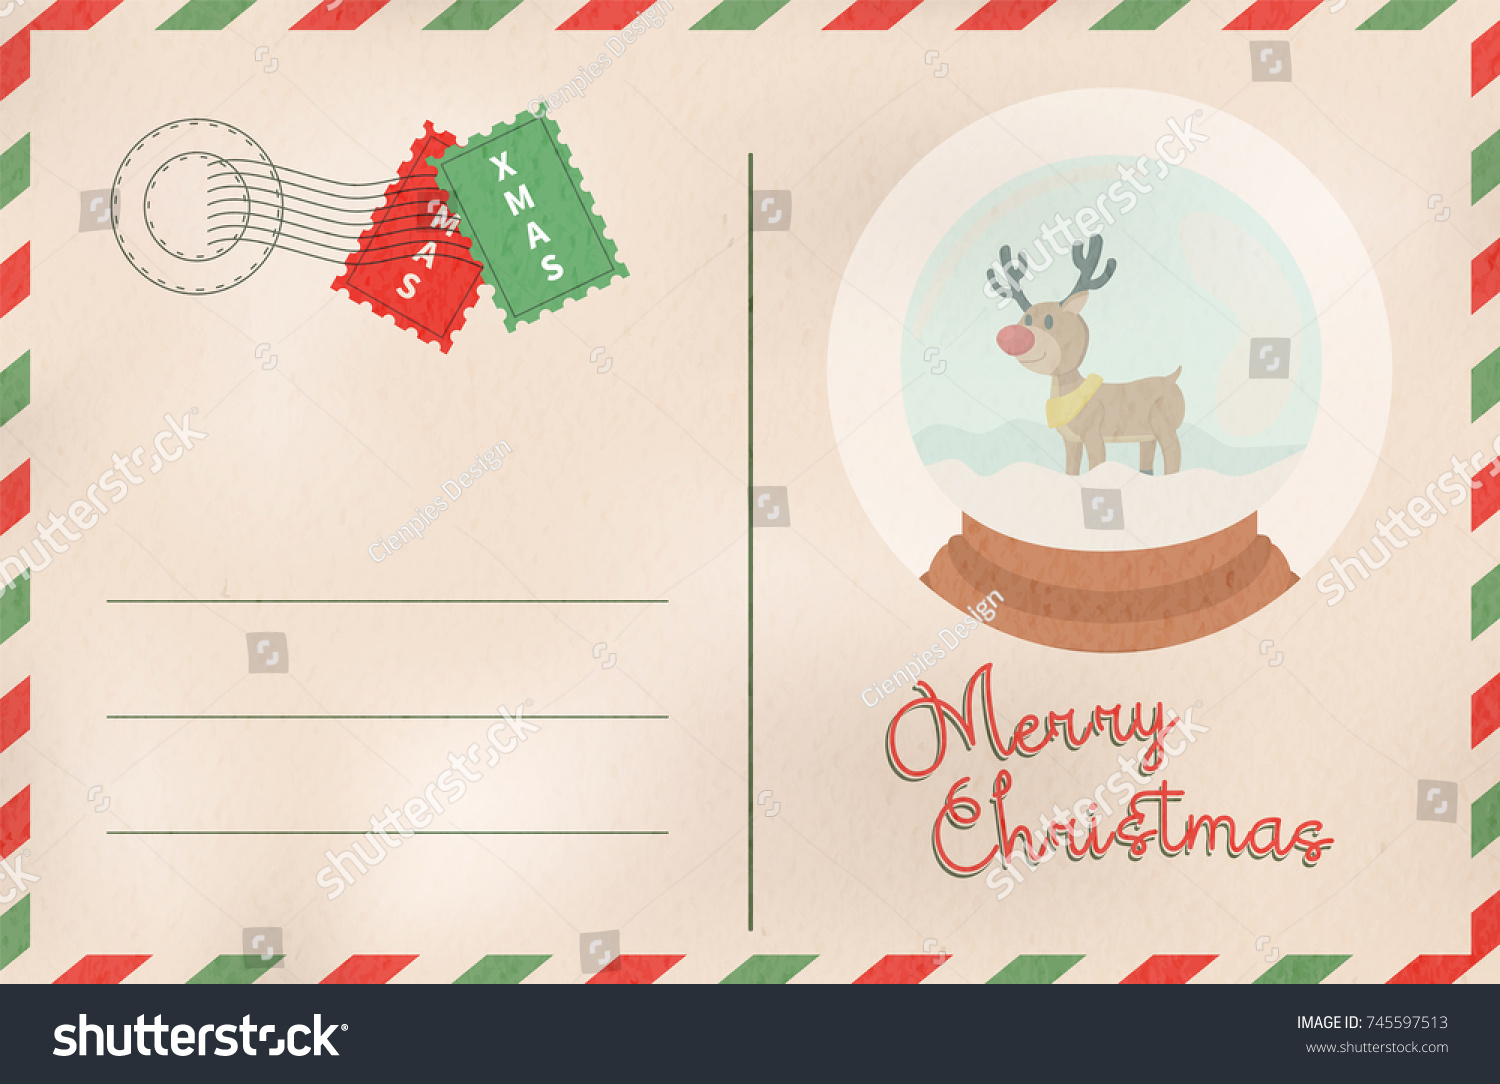 Merry Christmas Postcard Traditional Vintage Mail Stock Vector